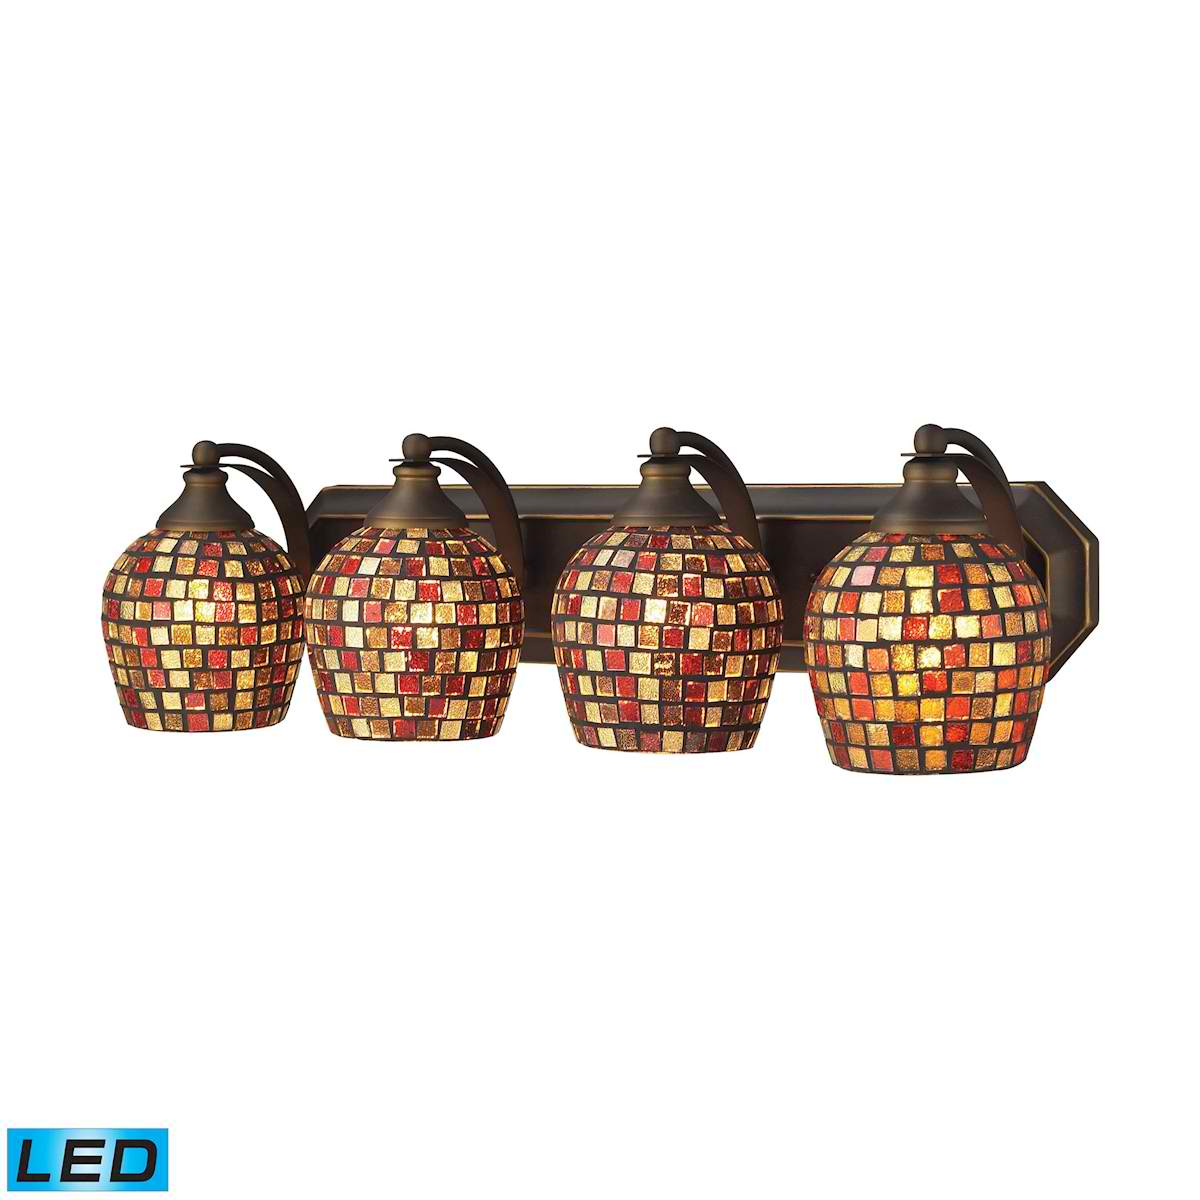 4 Light Vanity in Aged Bronze and Multi Mosaic Glass - LED, 800 Lumens (3200 Lumens Total) with Full Scale